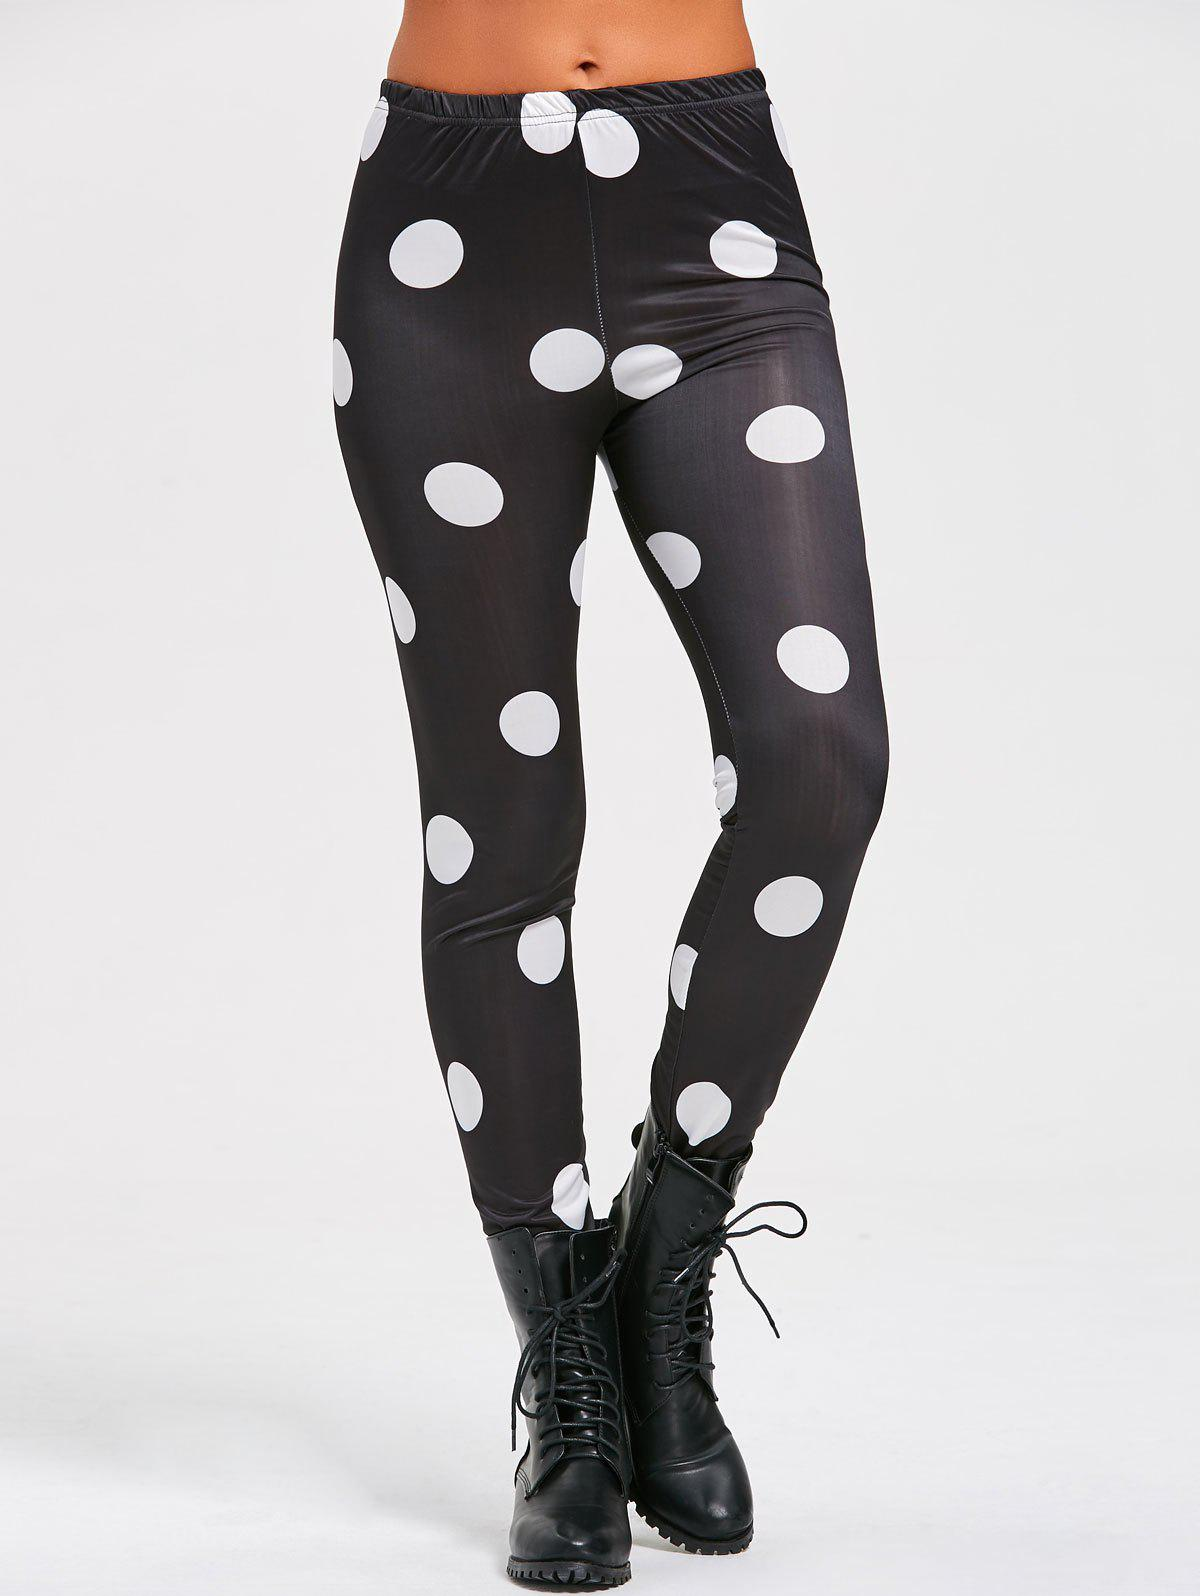 Skinny Polka Dot Print Leggings - BLACK L